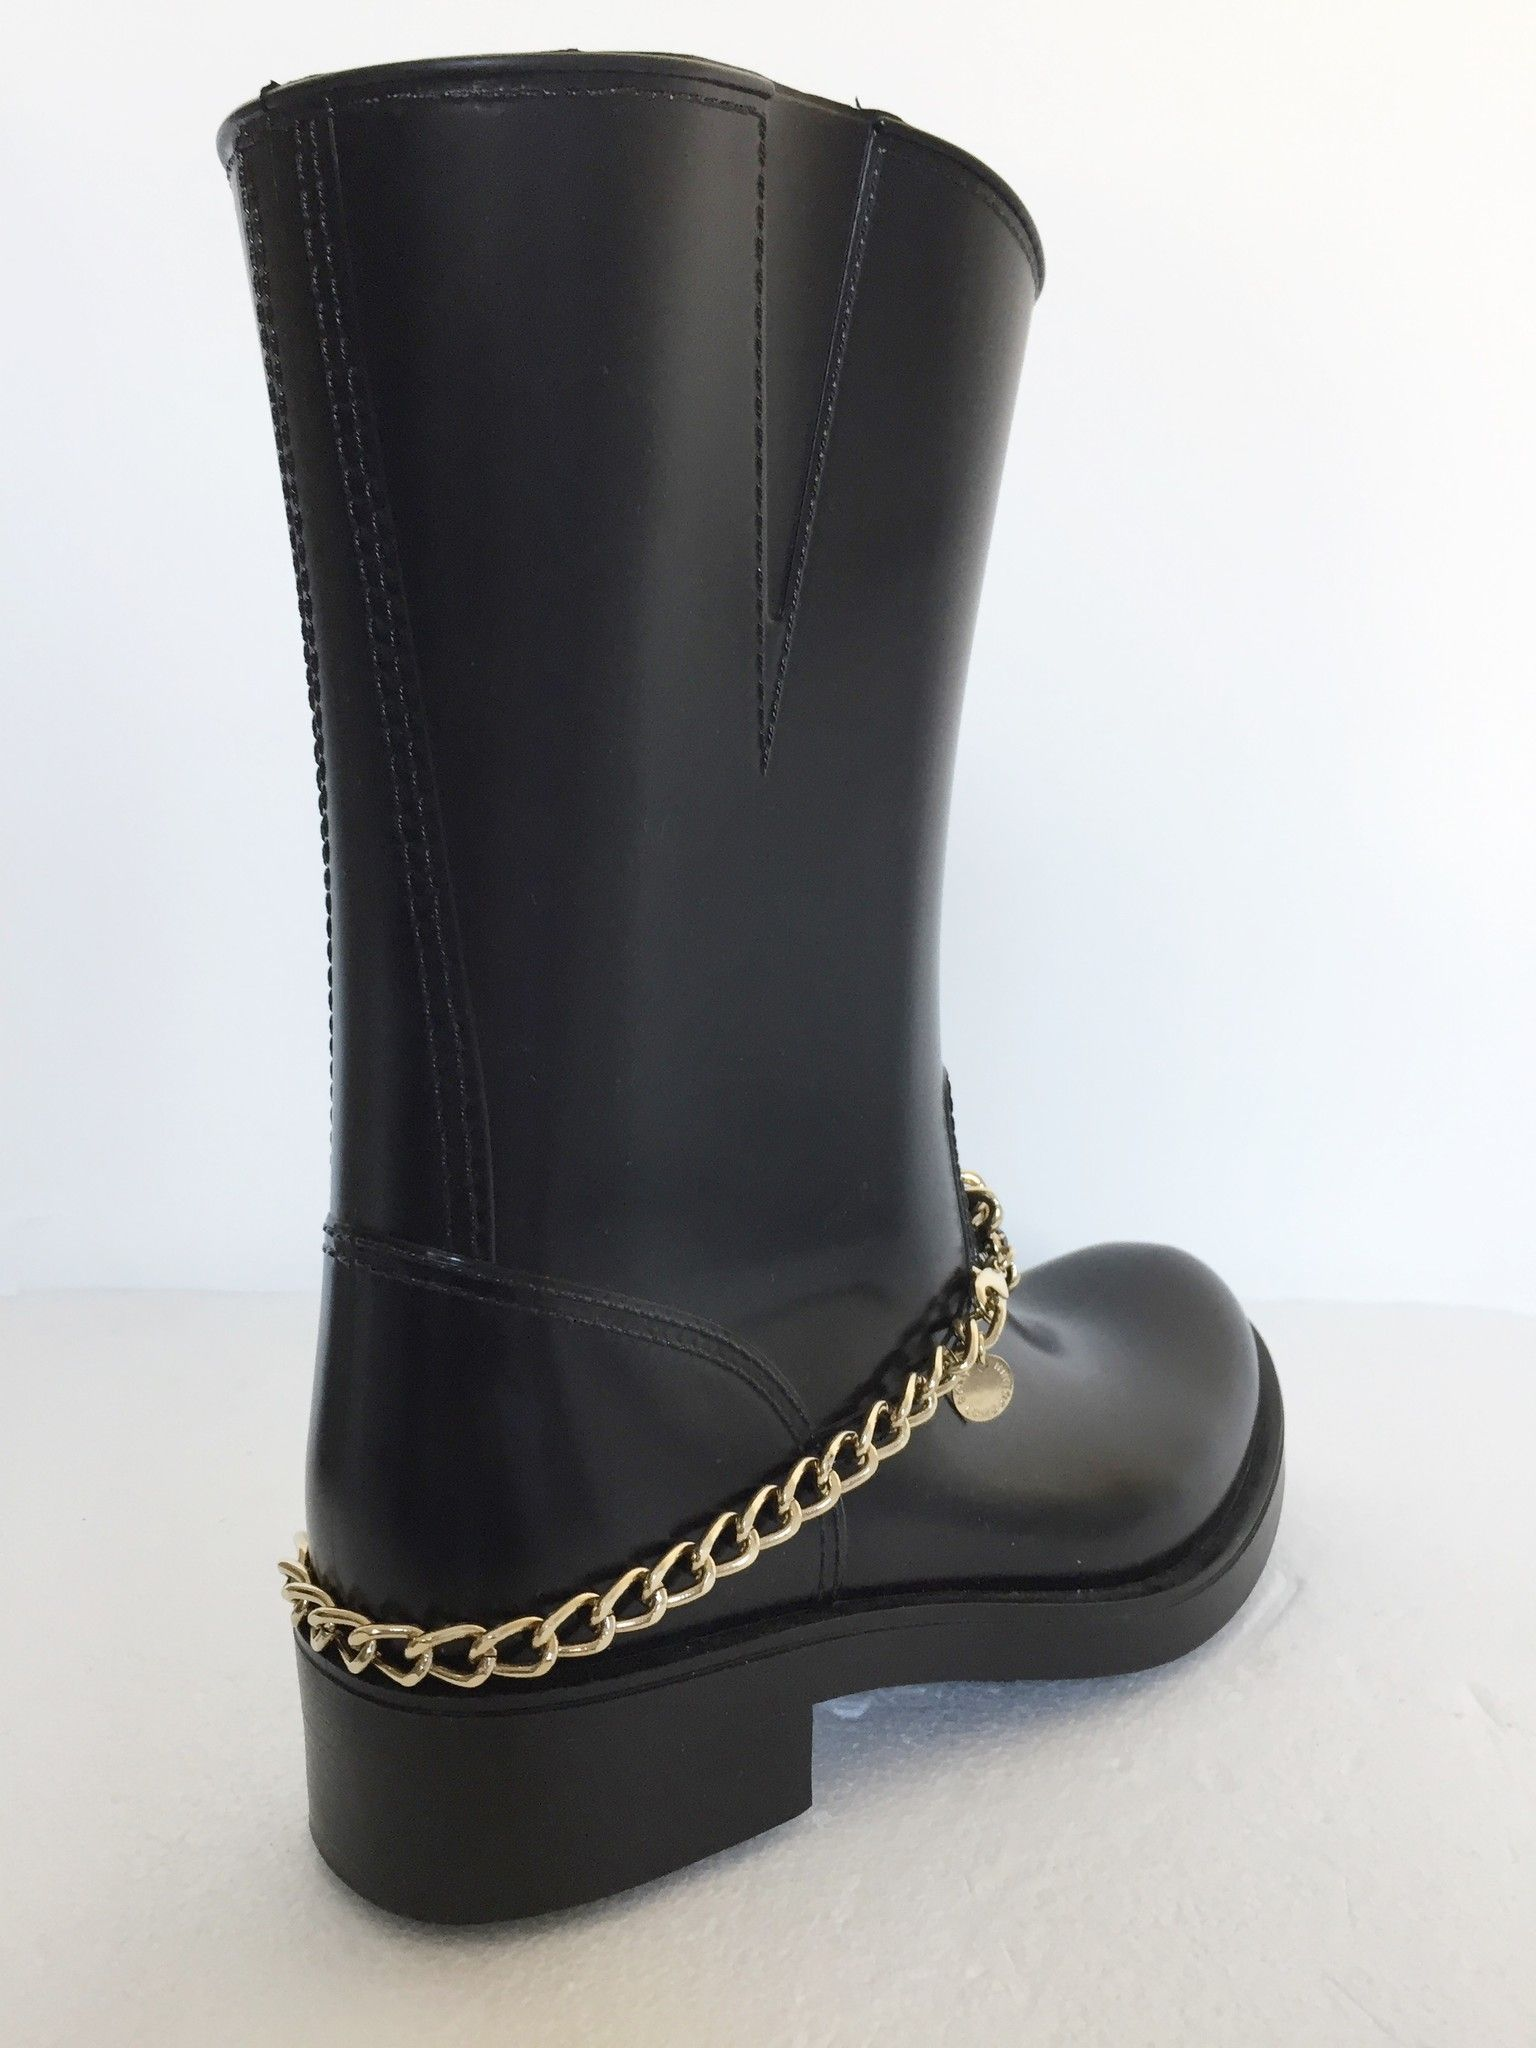 Atos Lombardini Rubber boots with golden chain Cod.0003